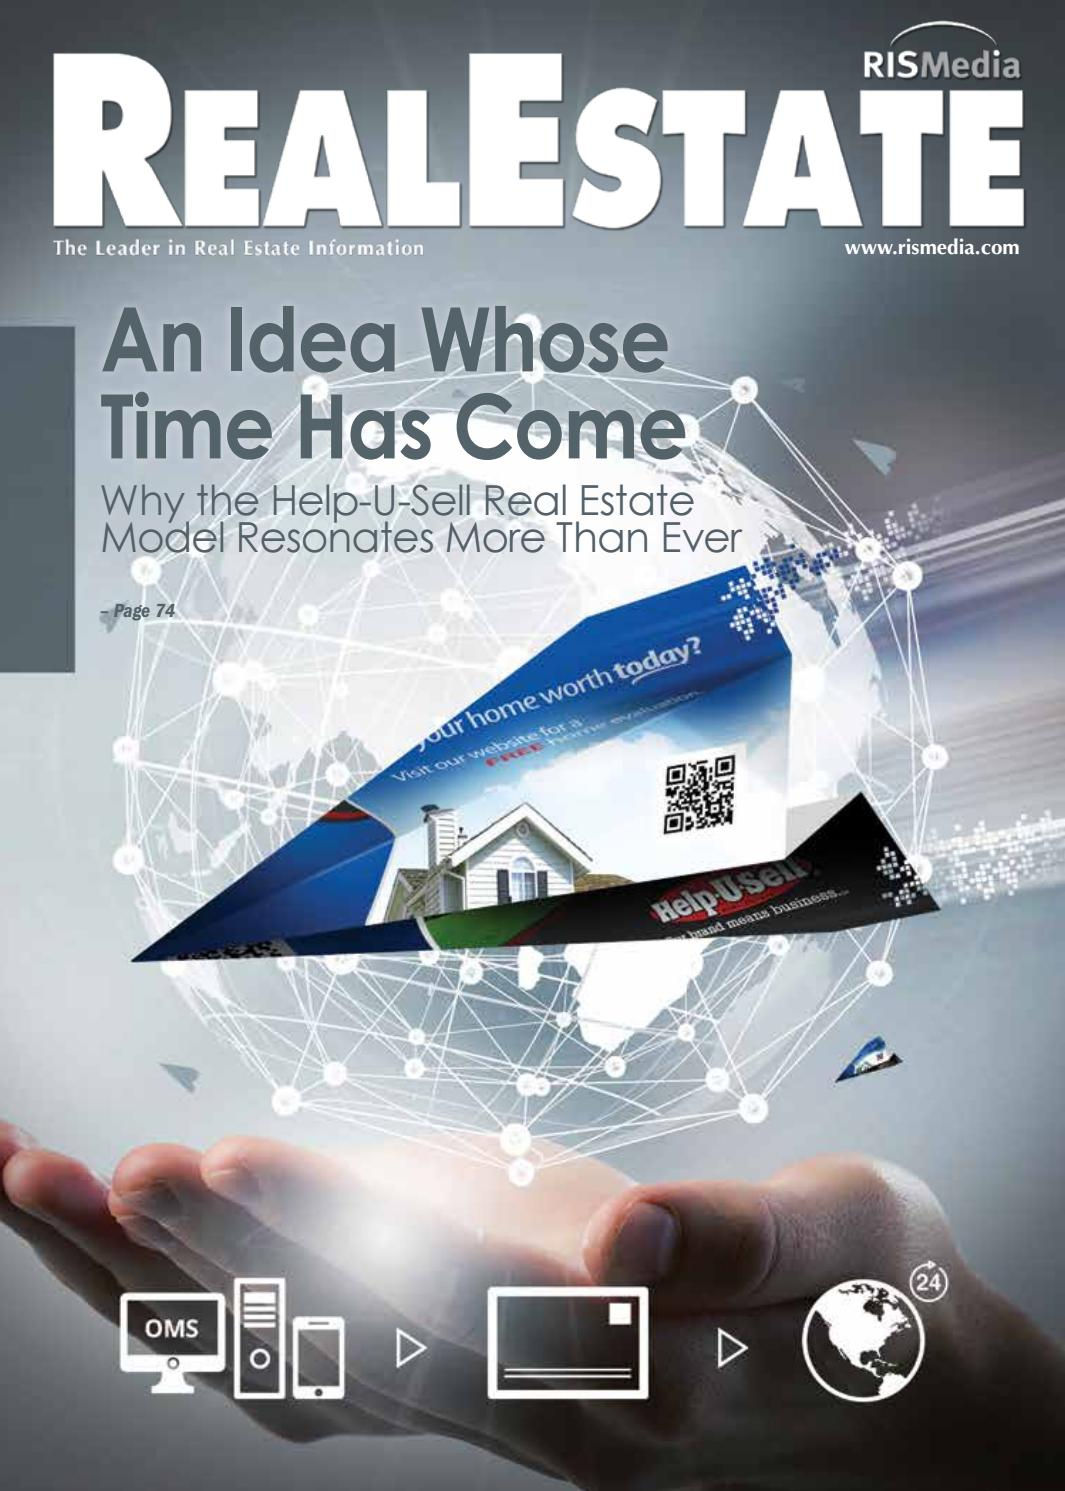 Real estate magazine help u sell june 2017 by rismedia issuu fandeluxe Gallery